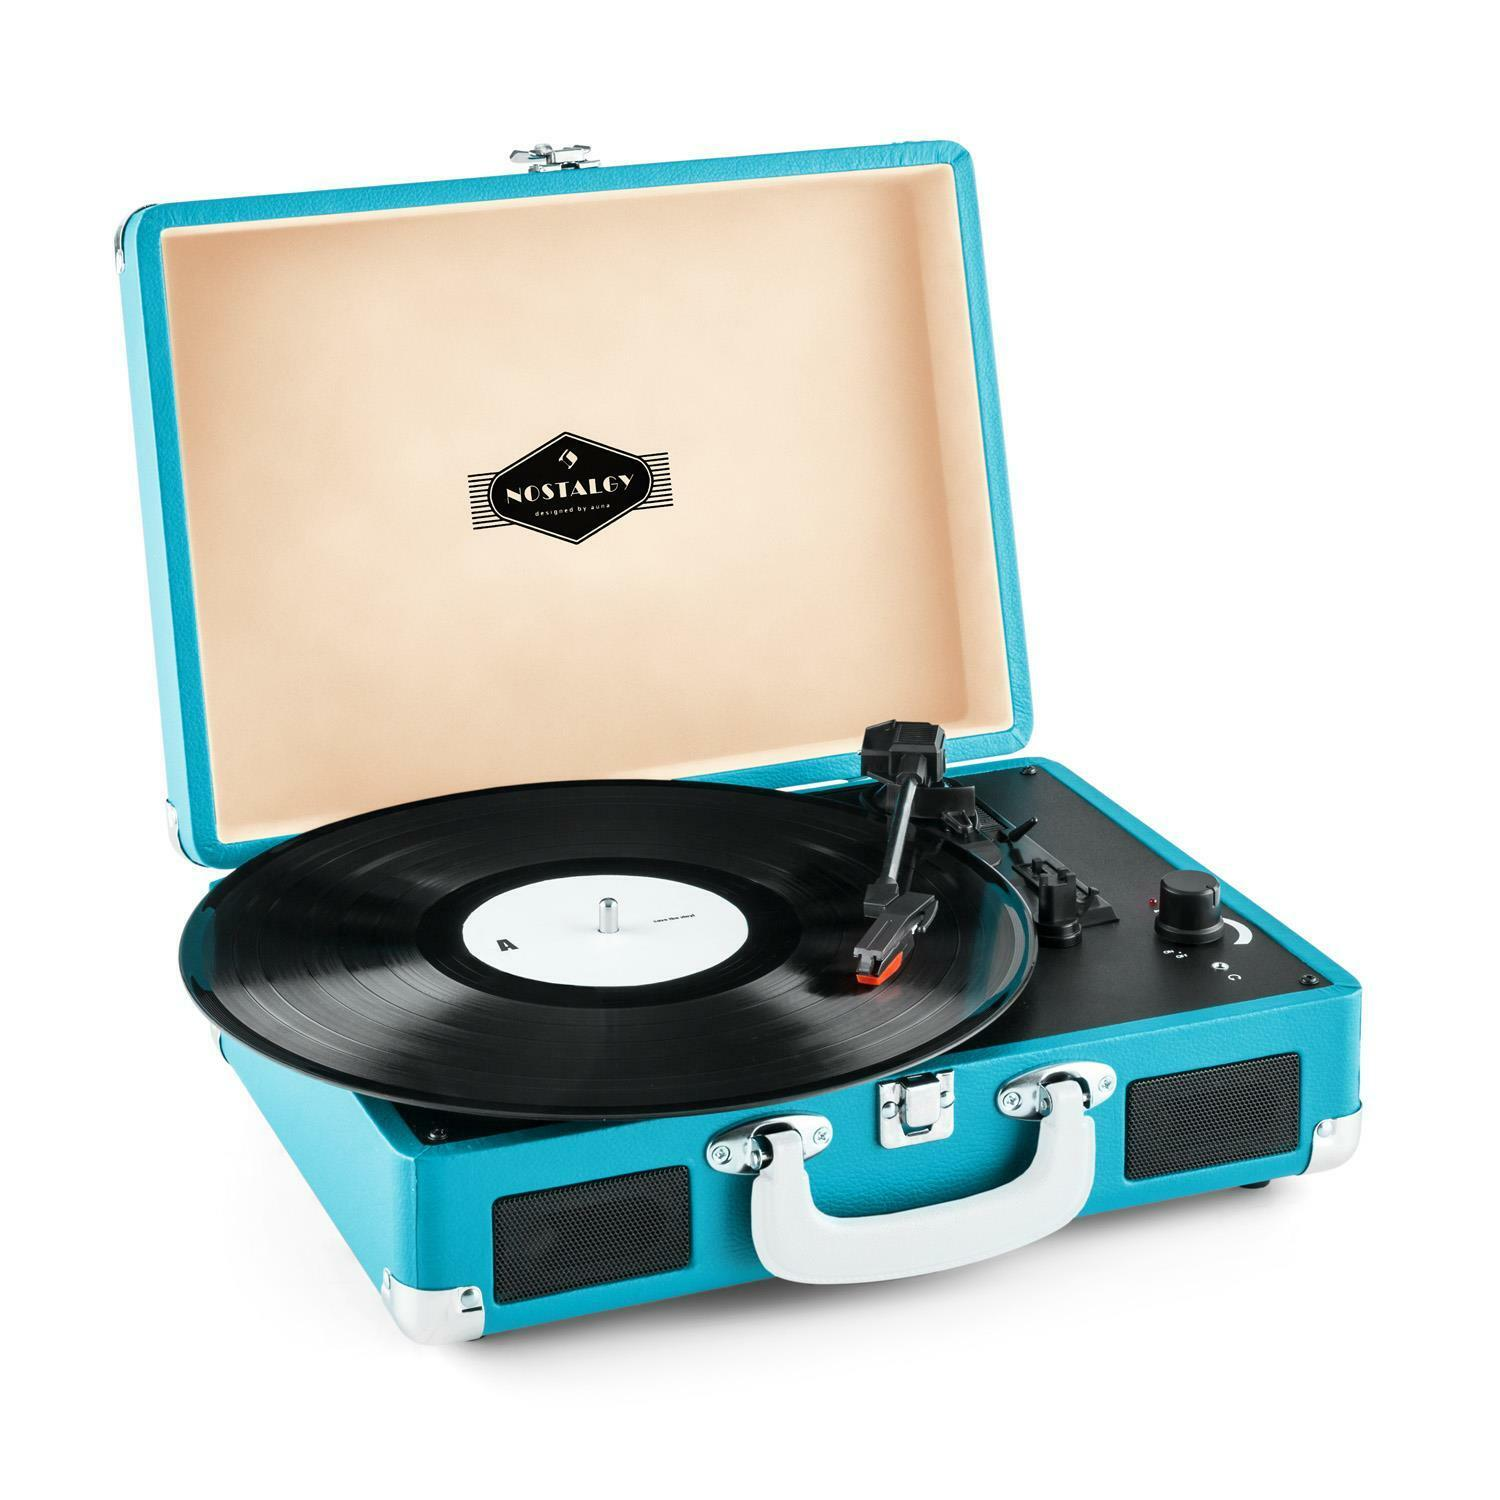 platine tourne disque vinyle auna transfert usb valise de transport retro bleu eur 69 99. Black Bedroom Furniture Sets. Home Design Ideas